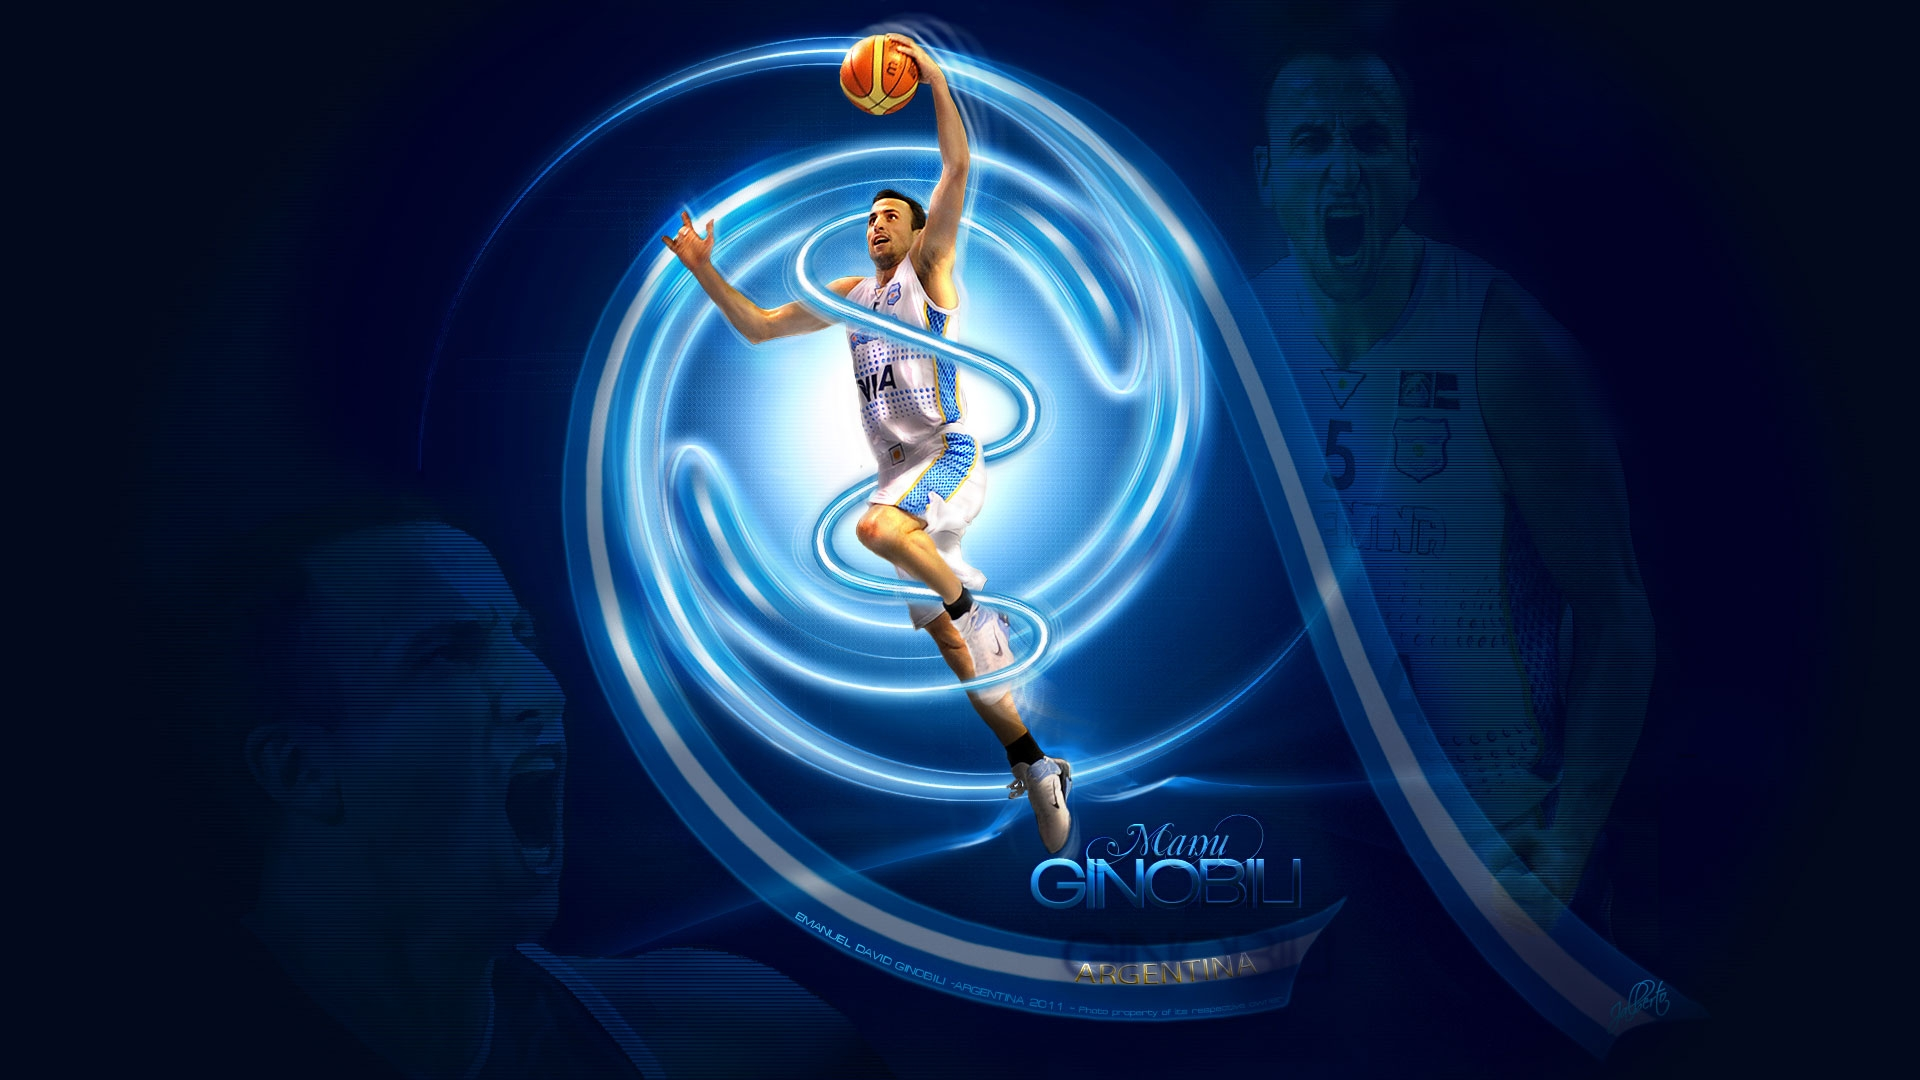 Manu Ginobili NBA Wallpaper